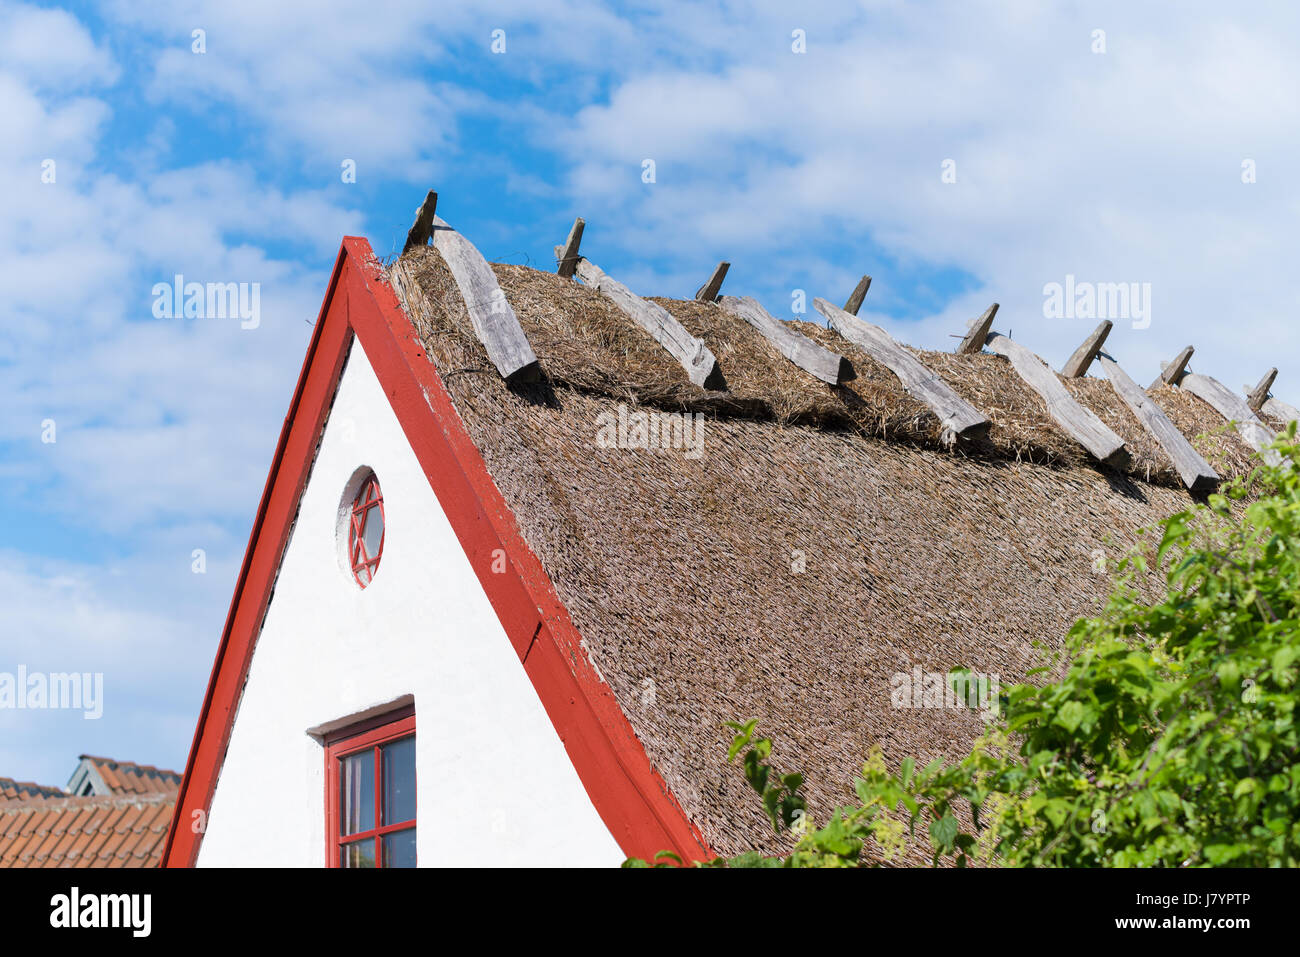 typical houses in the old fishermen's village of Kikhavn, in the northern part of Sealand - Stock Image